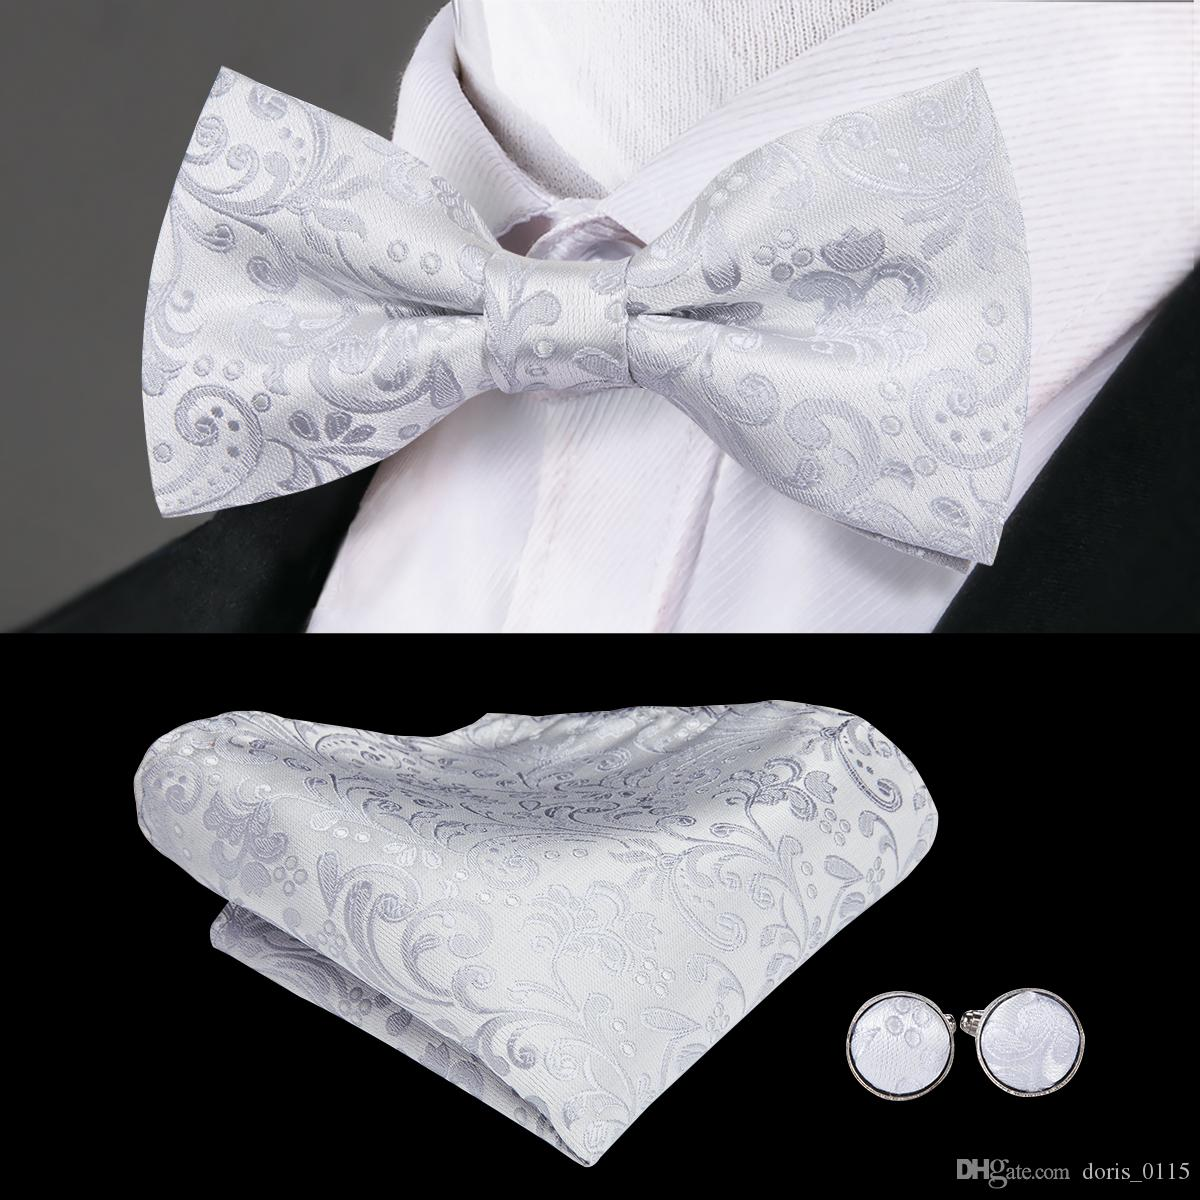 97662426343a Hi Tie White Floral Bow Tie For Men Luxury Style Neck Wear Silk Jacquard  Woven Hanky Cufflinks Set For Wedding Party LH 791 Grey Tie Burgundy Tie  From ...